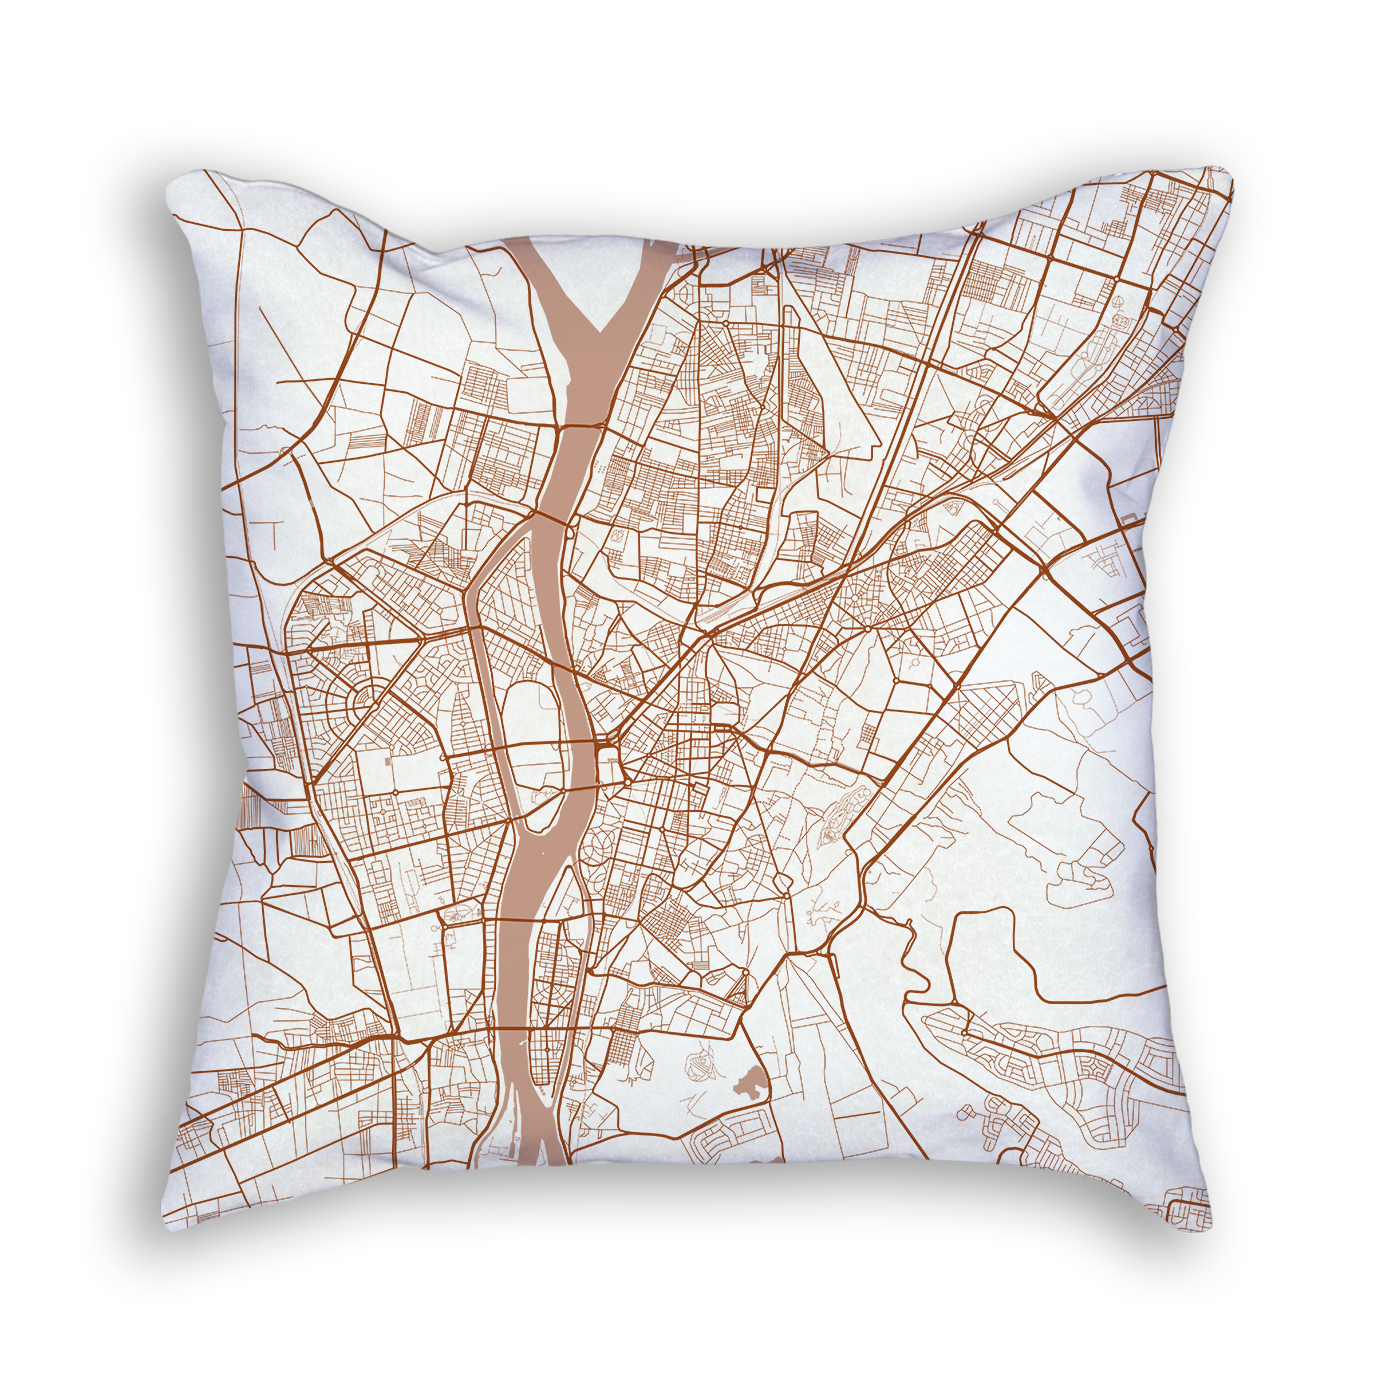 Cairo Egypt City Map Art Decorative Throw Pillow